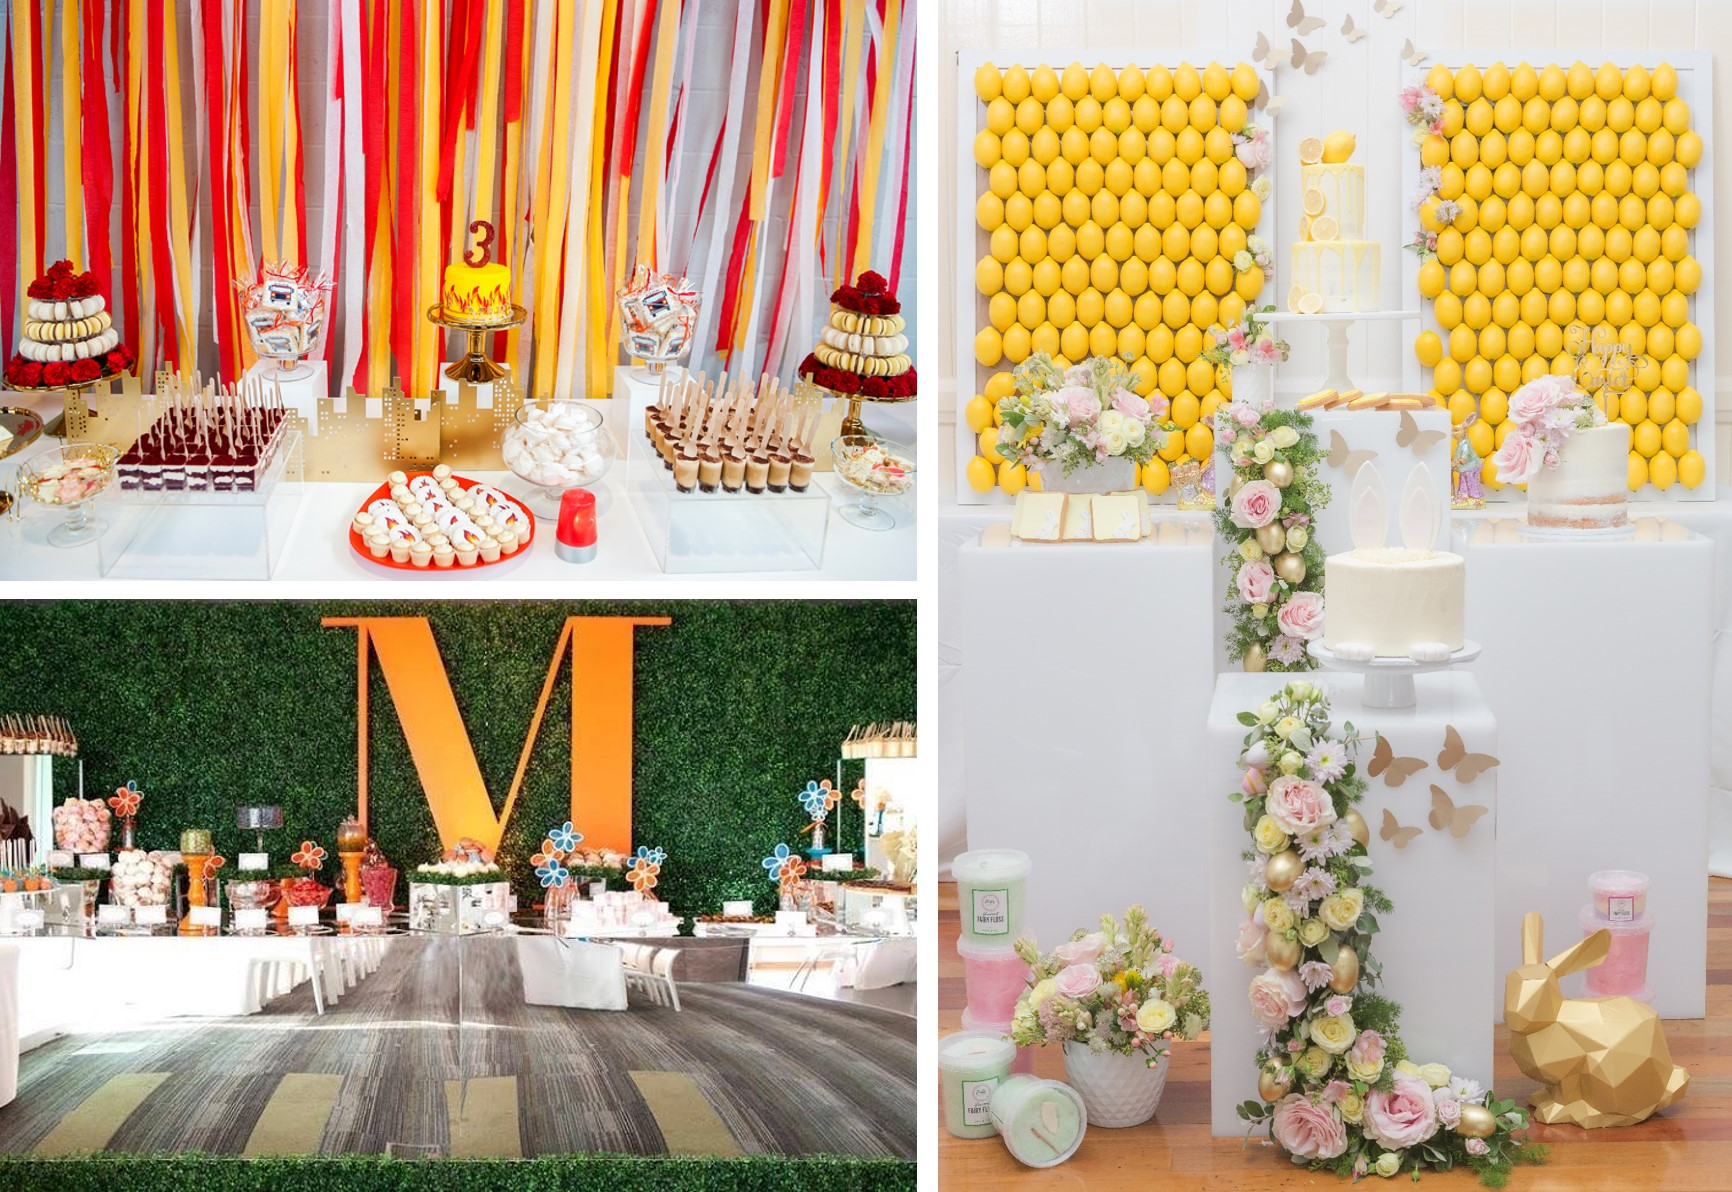 L-R: Collaboration with Sasha Giocondo, ZIPPR ; Photography by Milly Jane Photography   Collaboration with Celebrations by Alysia, The Bella Bloom Co, Miss Cookie Brisbane, Cardique, Sydney Paper Flowers, Fluffy Crunch ; Photography by Deluxe Media Weddings  